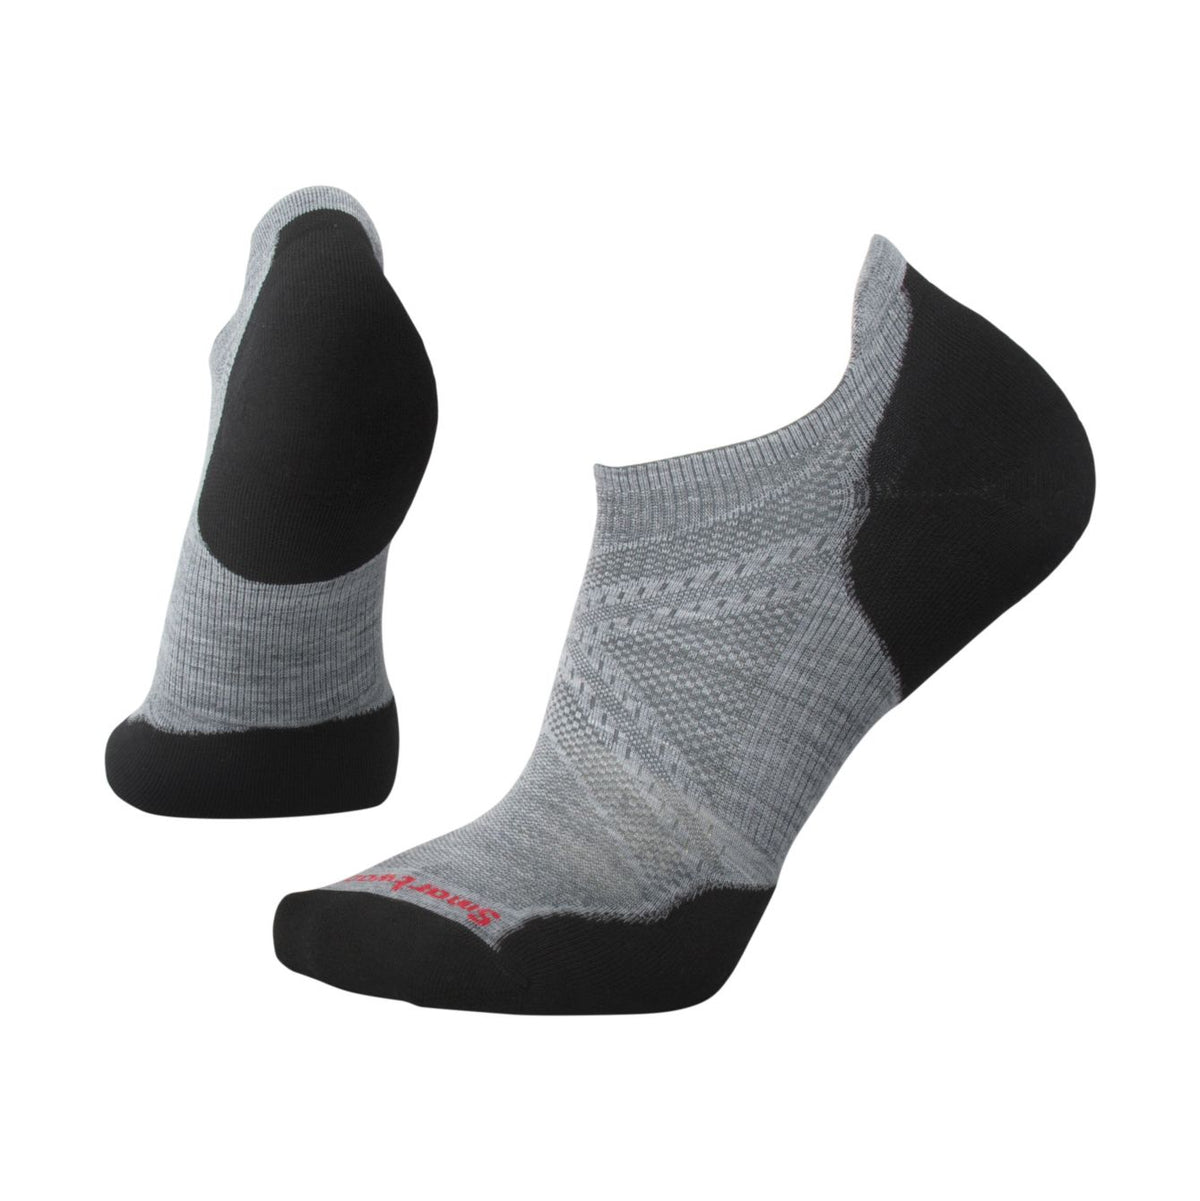 PhD® Run Light Elite Micro Socks Light Gray/Black (Men)